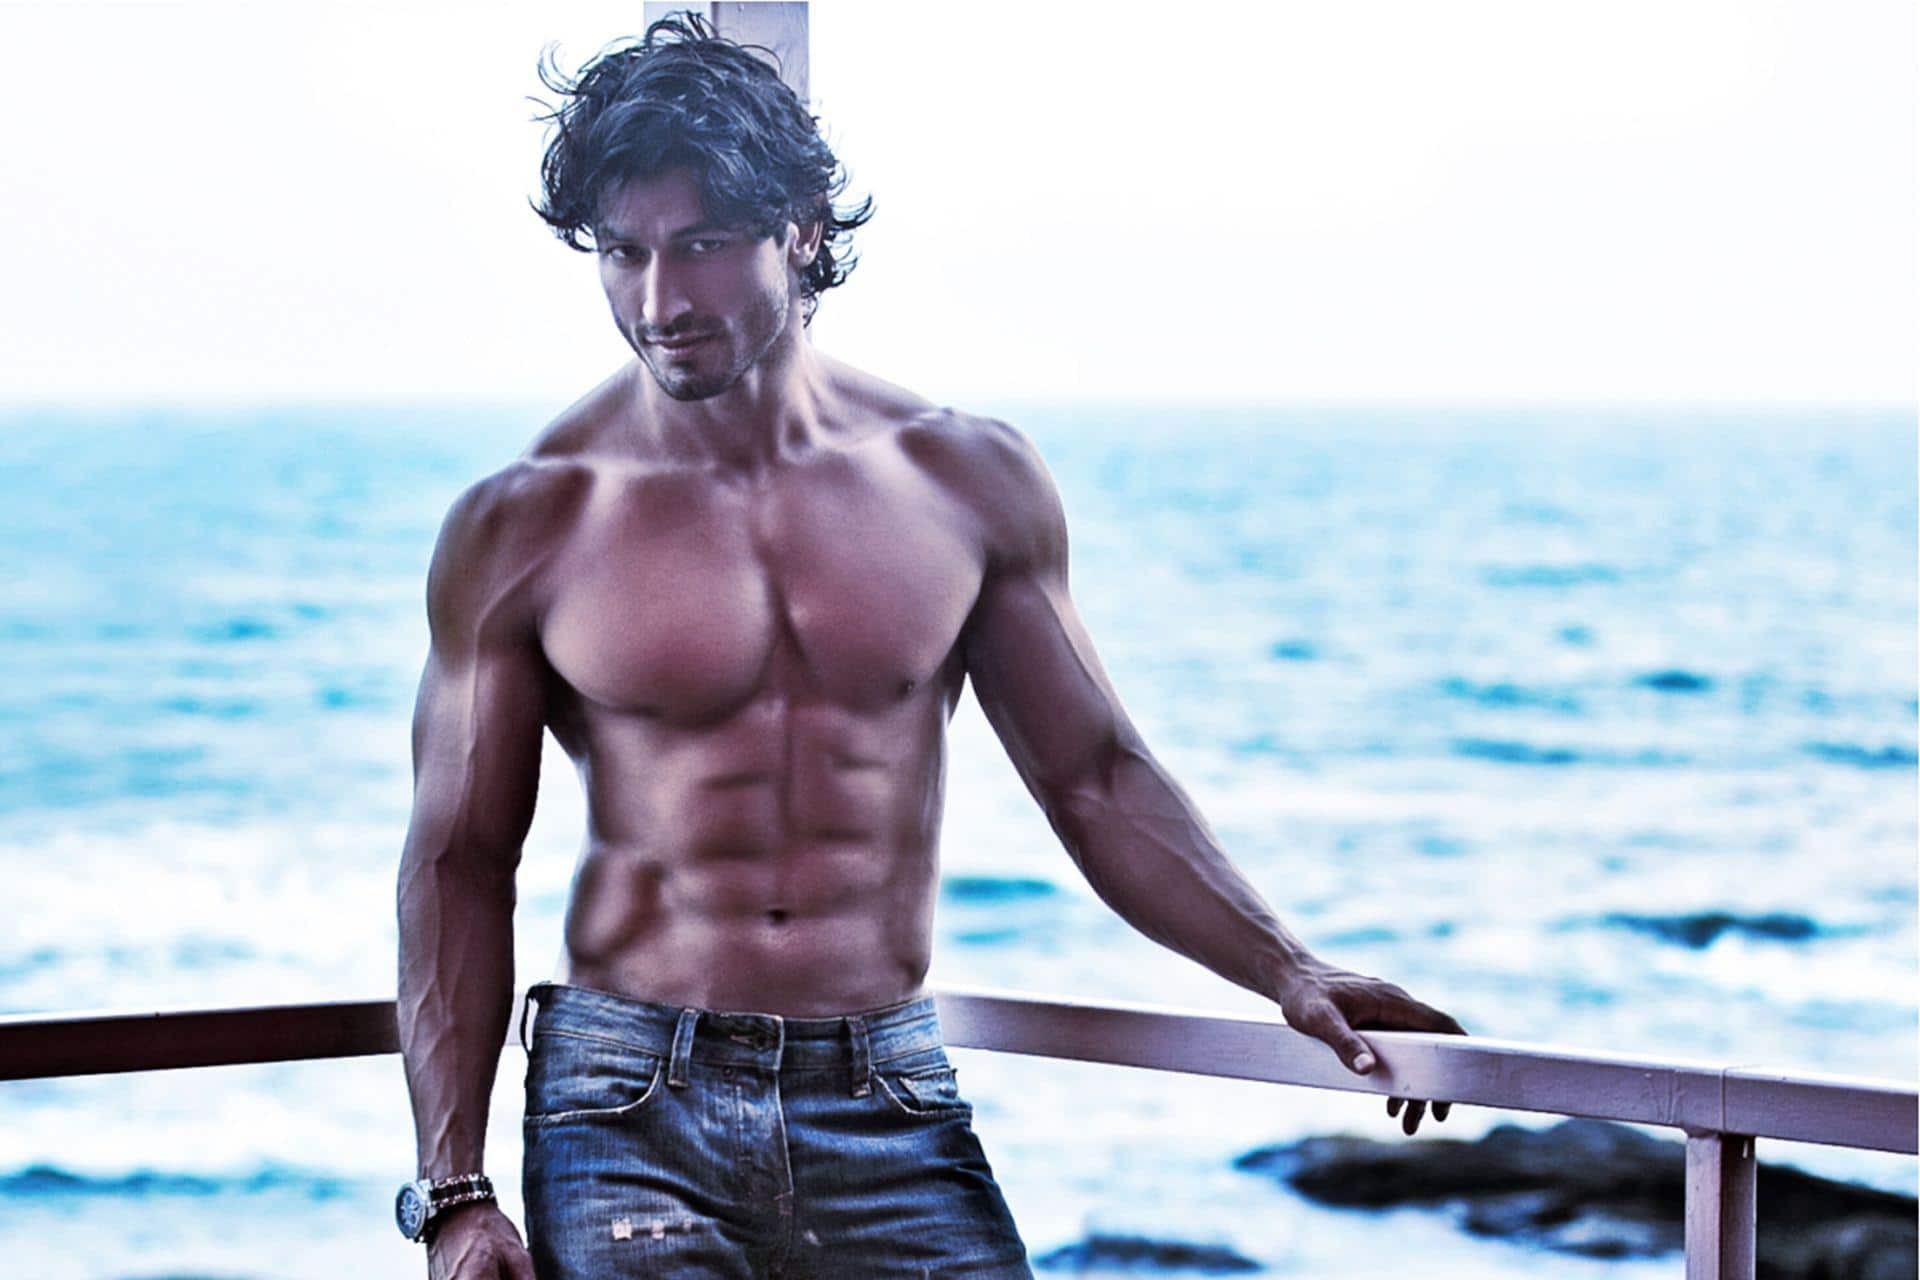 Vidyut Jamwal And His Friend Acquitted By The Court In A 12-Year-Old Assault Case